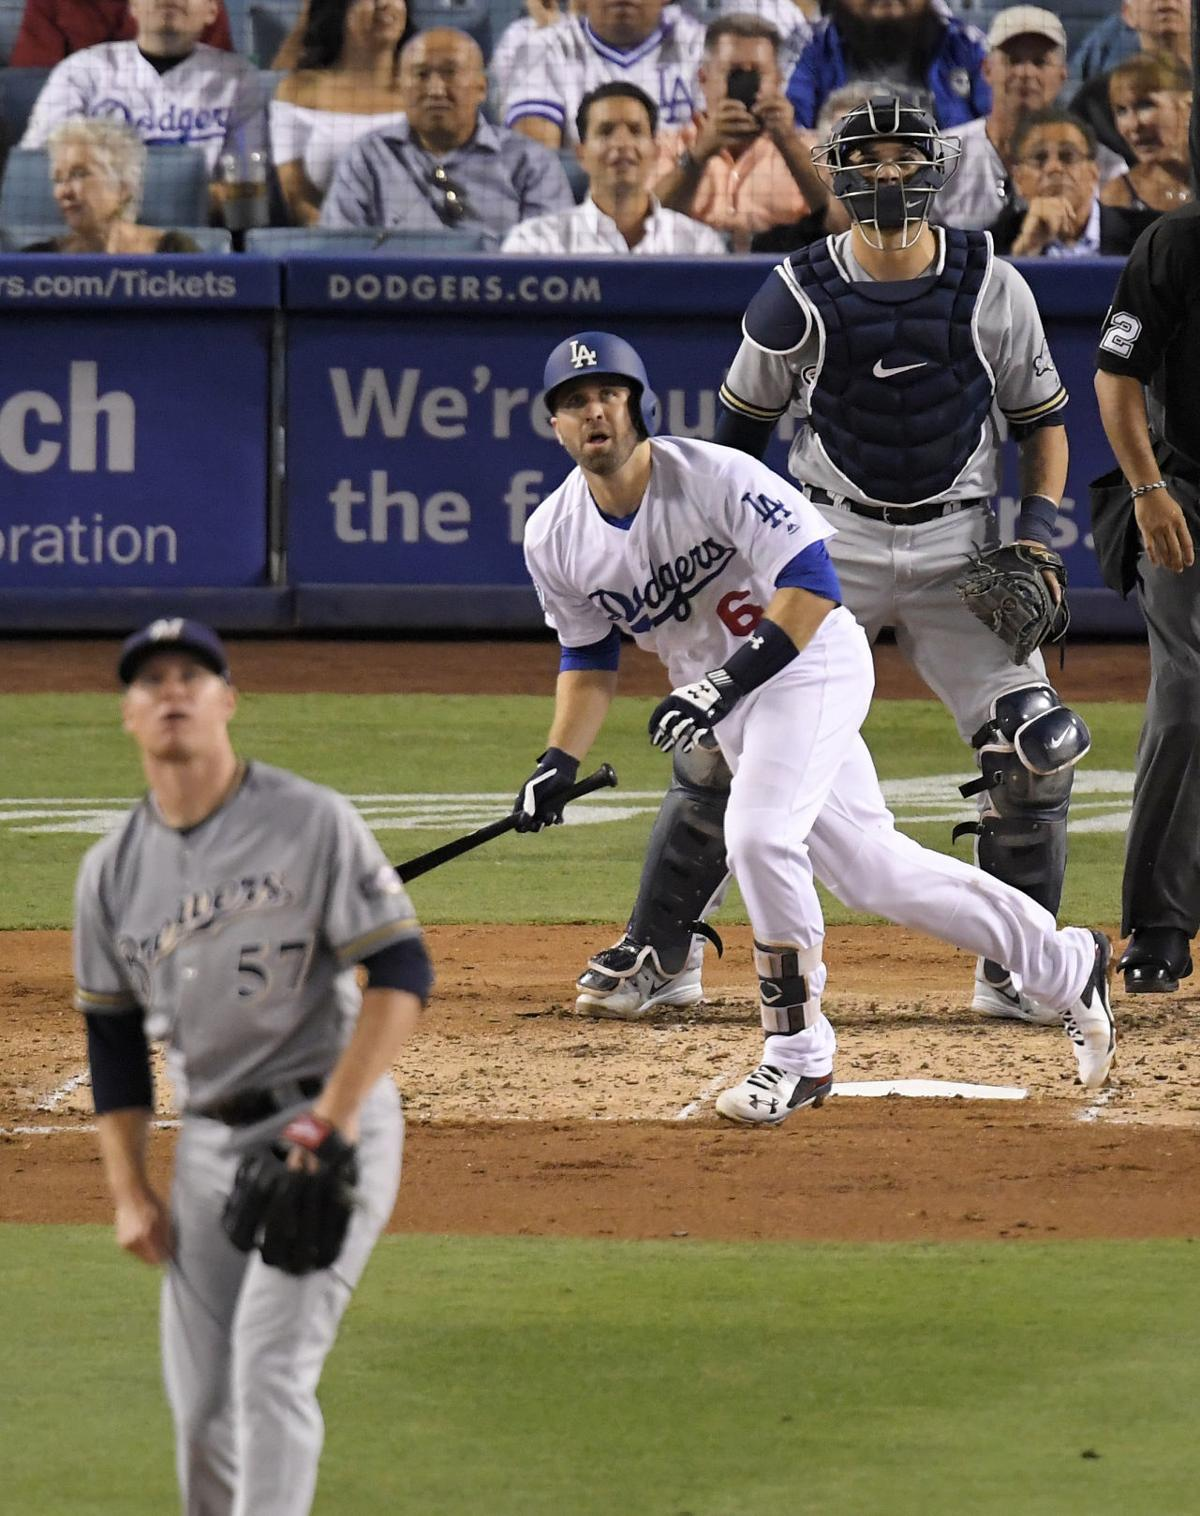 online store 0247a a4c24 Dozier homers in first game for Dodgers | Sports | djournal.com